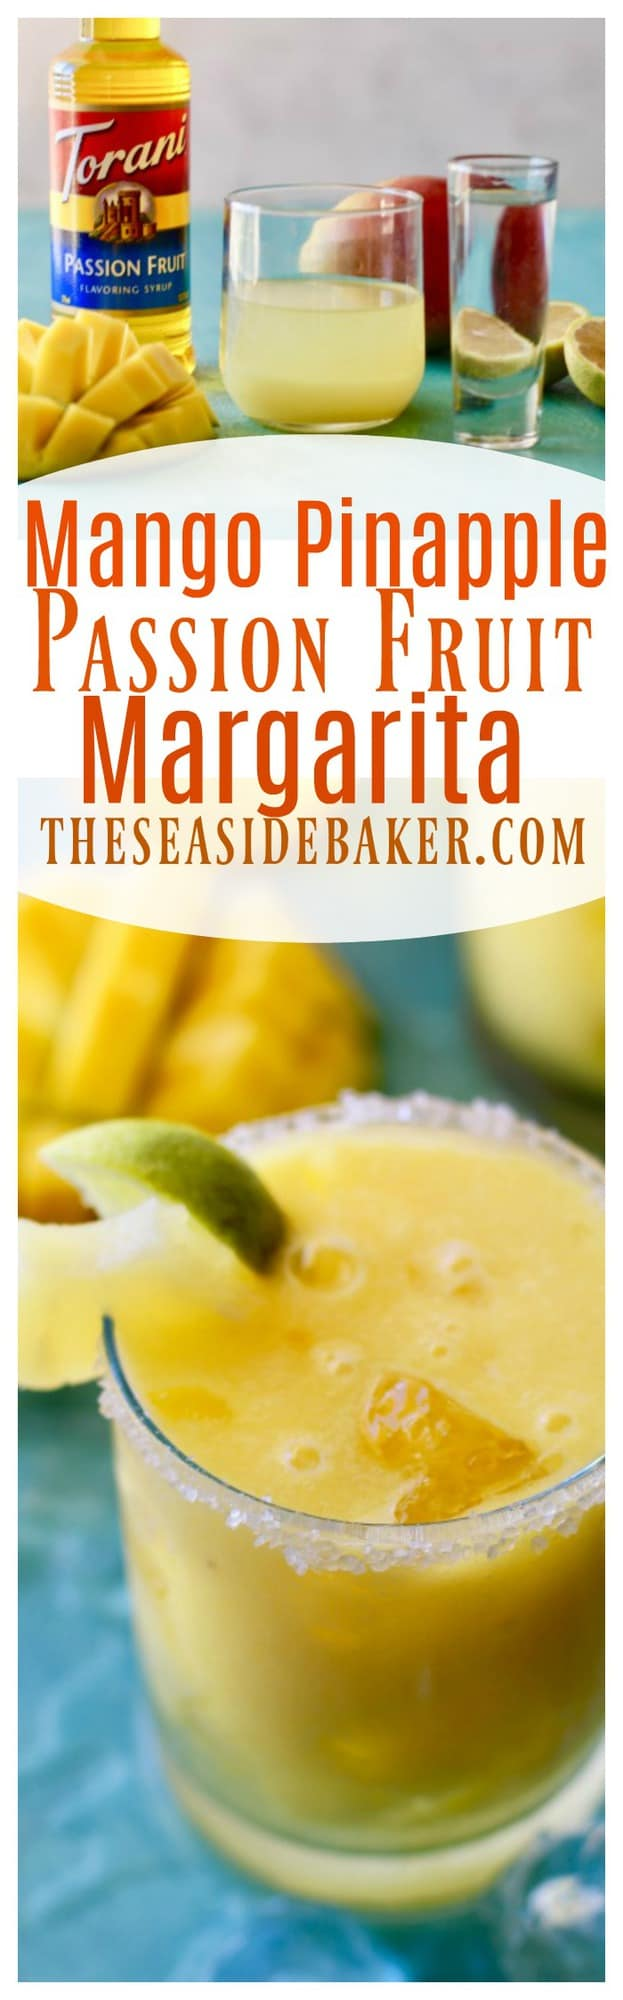 Easy to make margarita made with fresh mango, pineapple juice and passion fruit syrup. The perfect drink on a hot summer day!